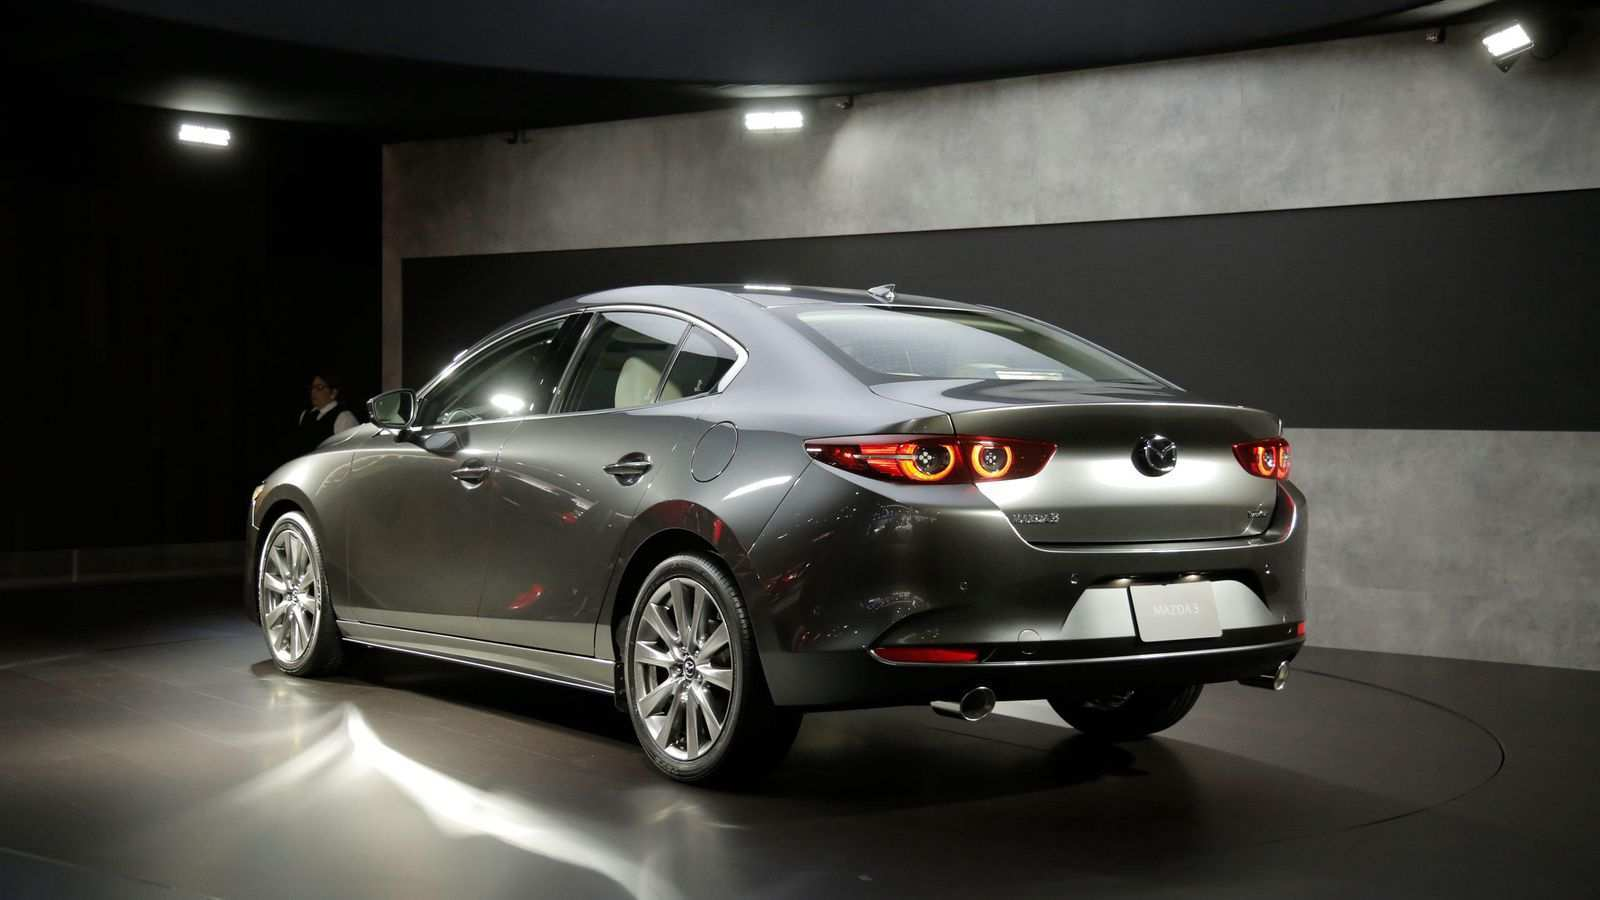 65 Gallery of Mazda Skyactiv X 2020 Redesign and Concept with Mazda Skyactiv X 2020